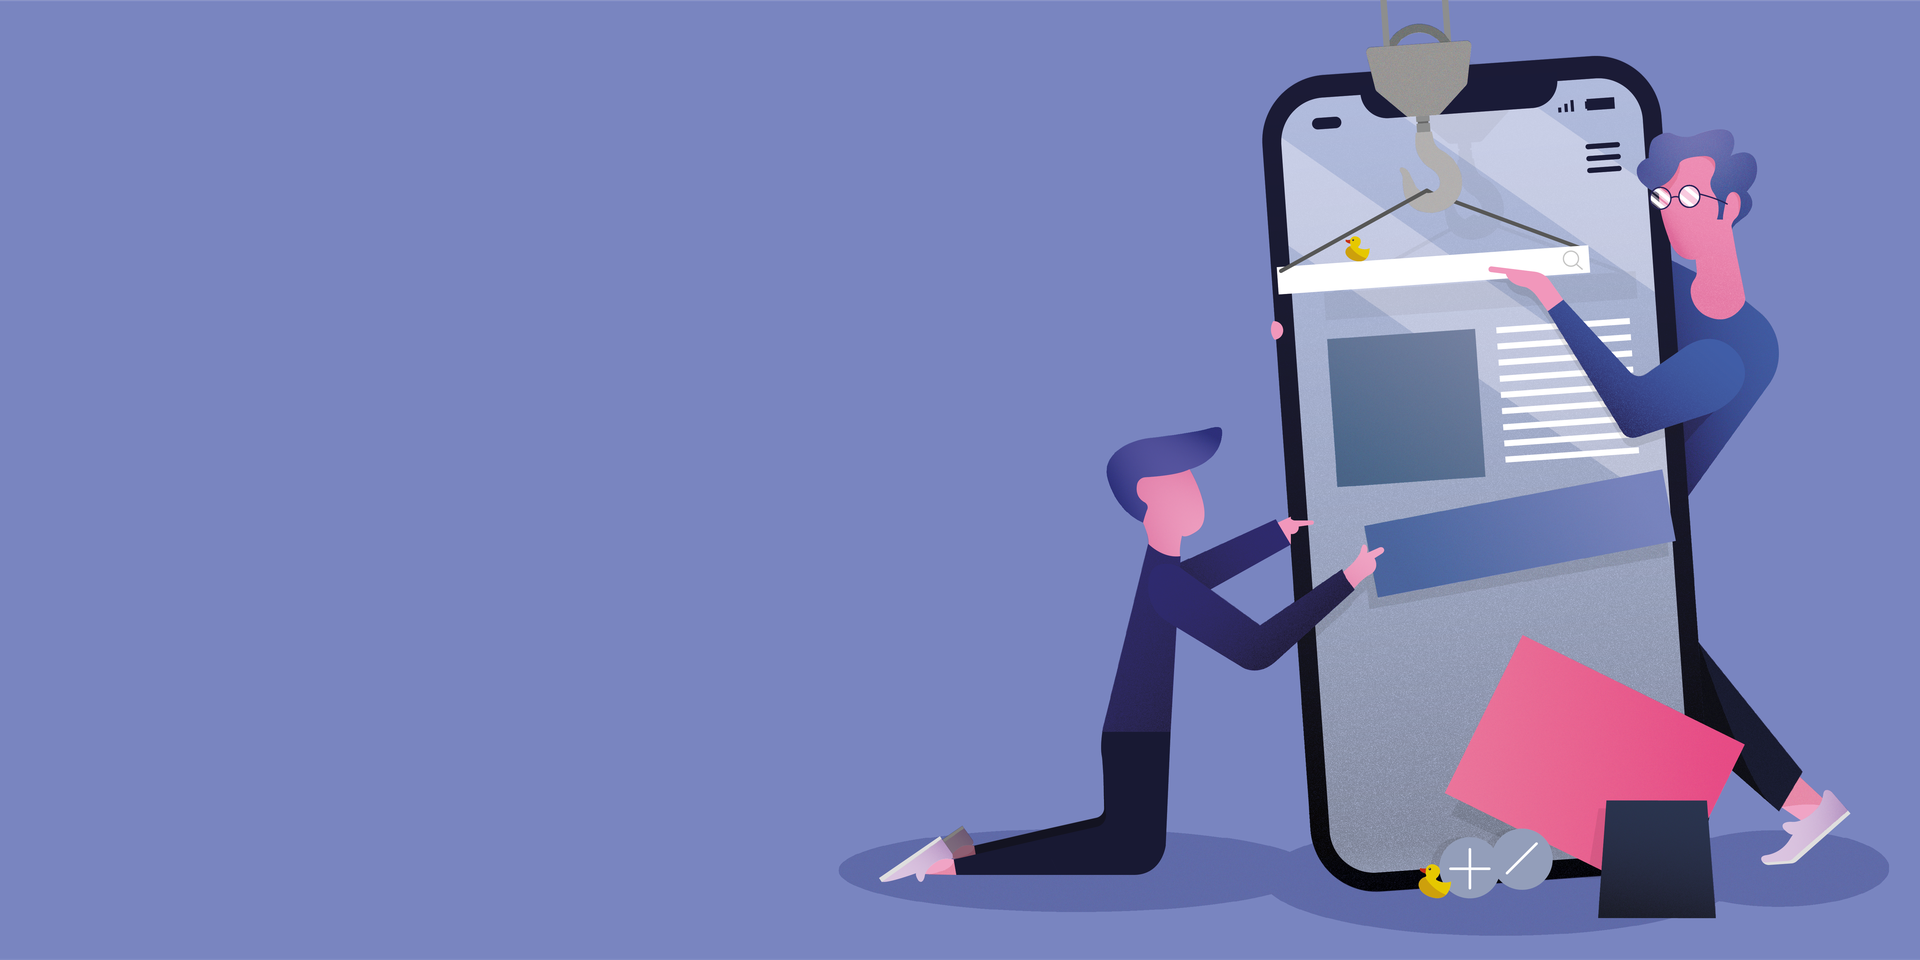 Illustration of two designers fixing the UI of a huge blue phone